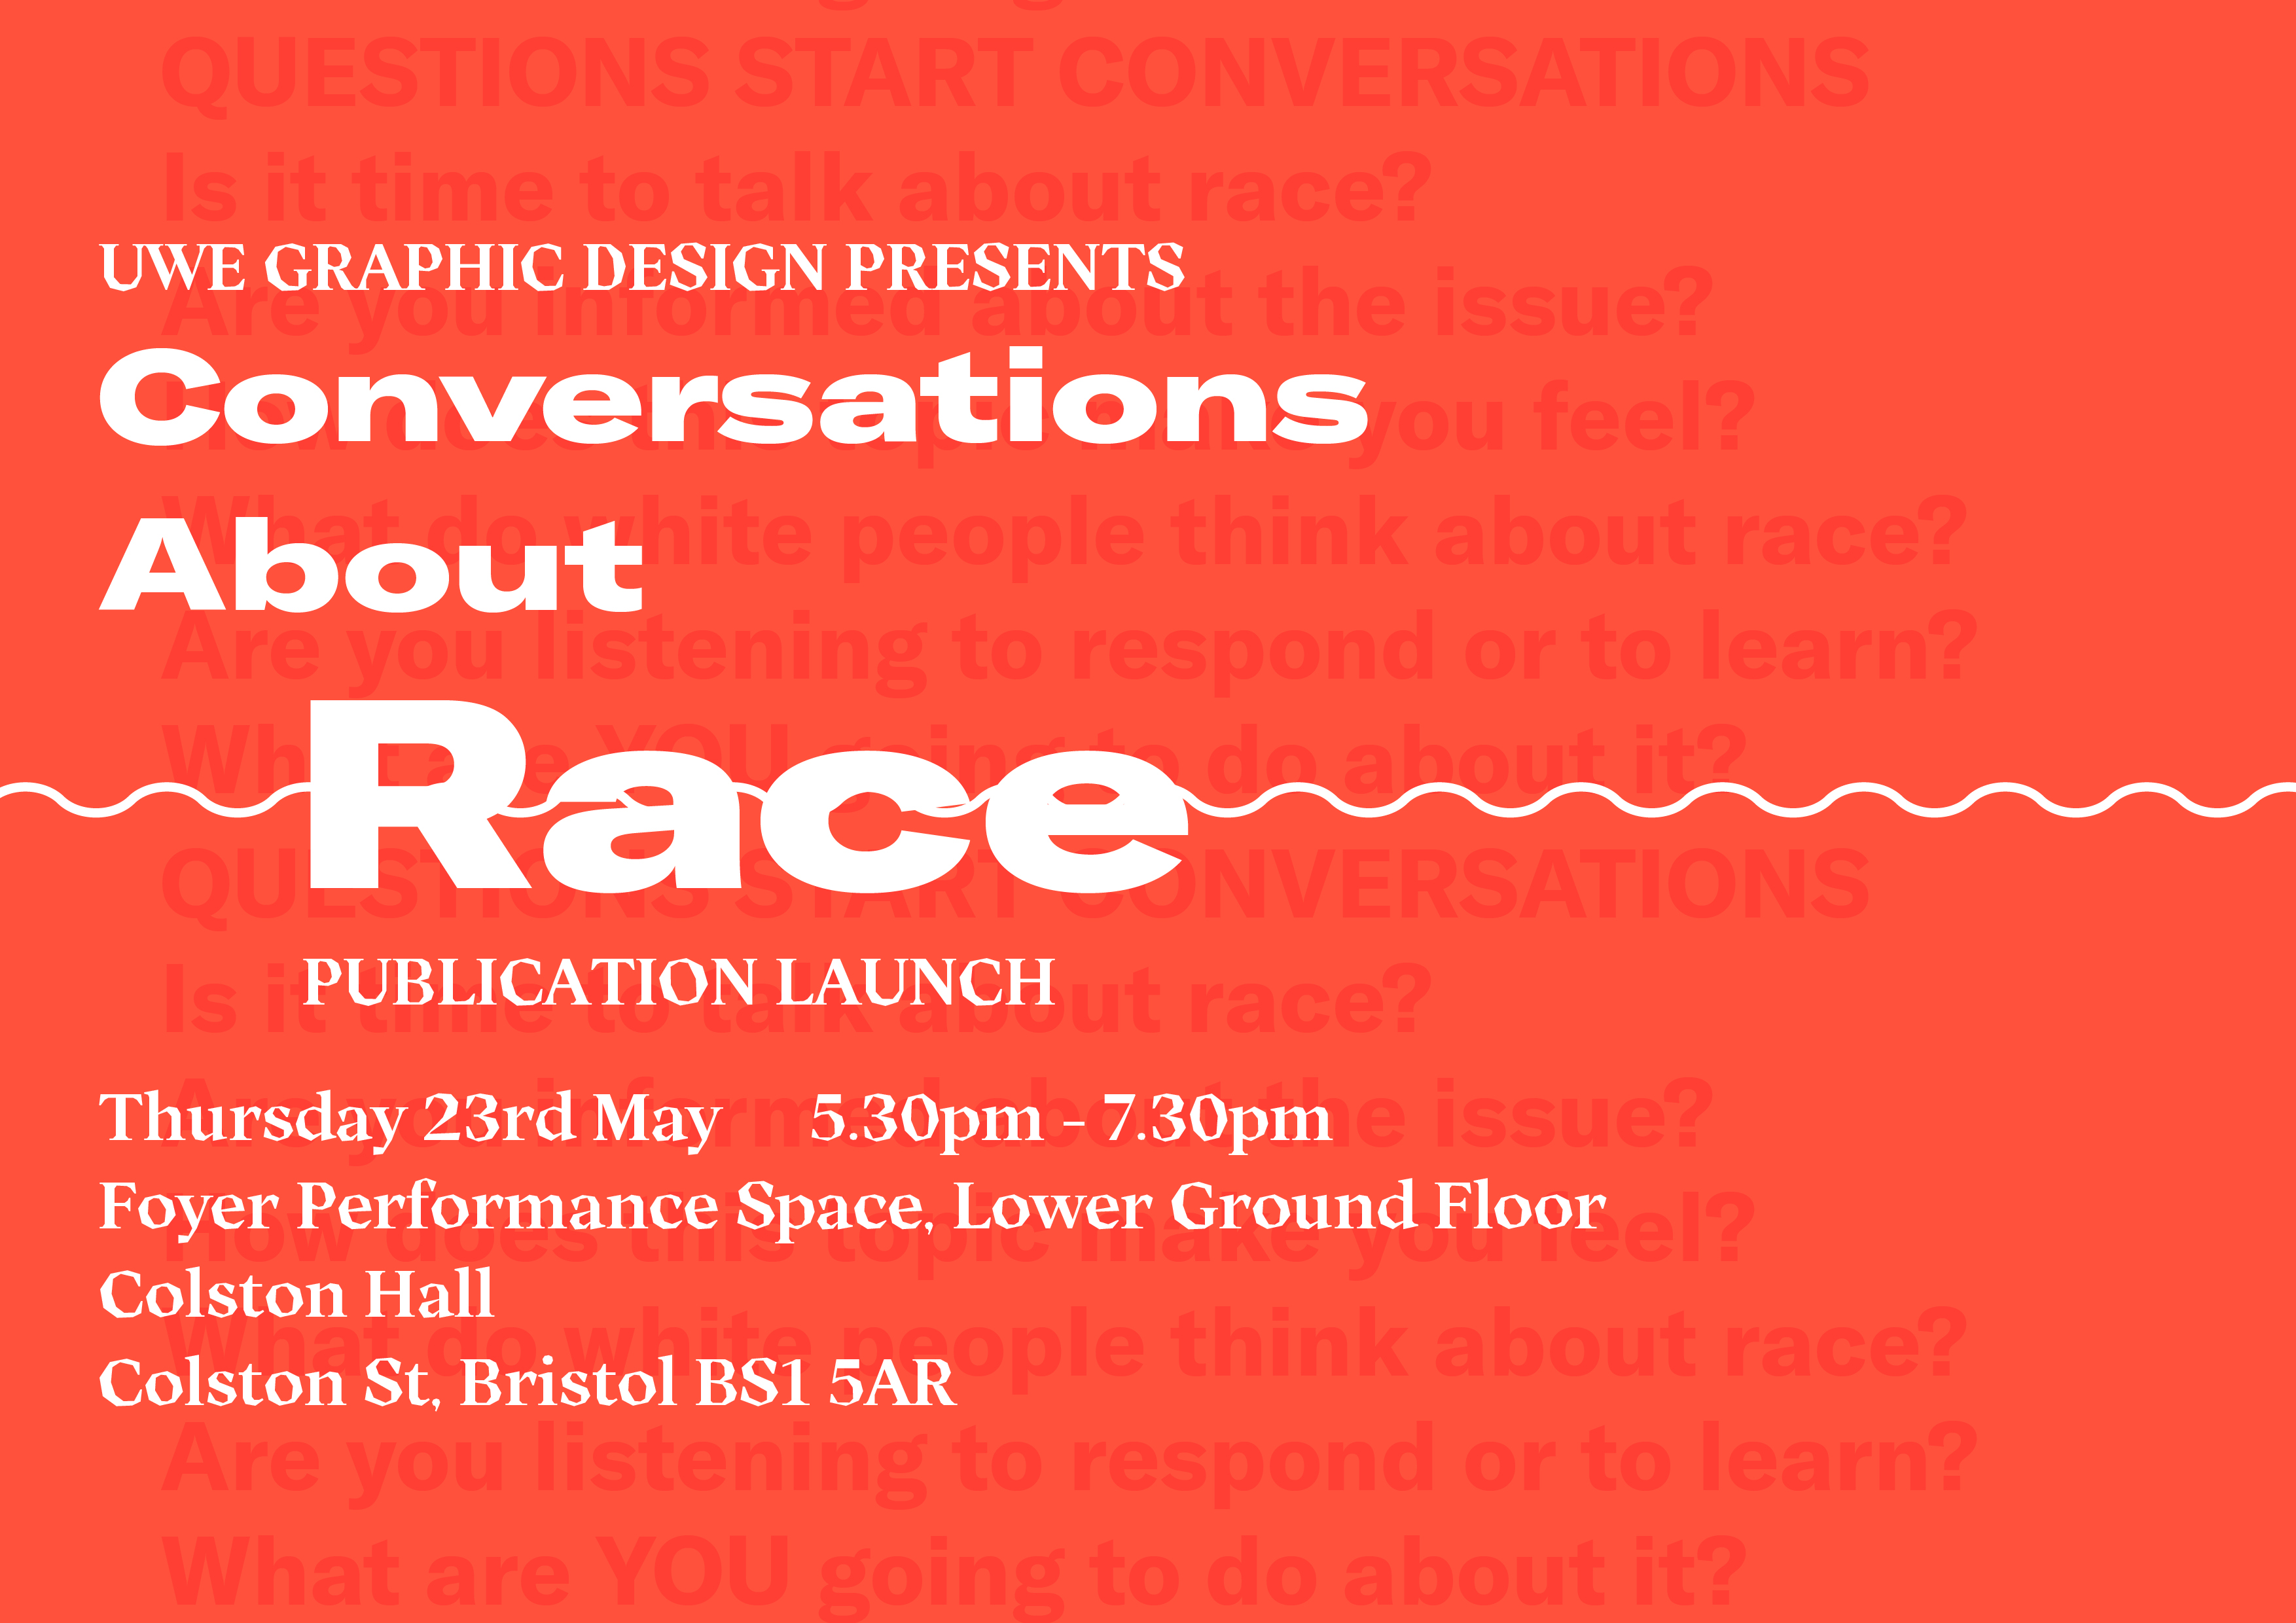 Conversations About Race: Publication Launch